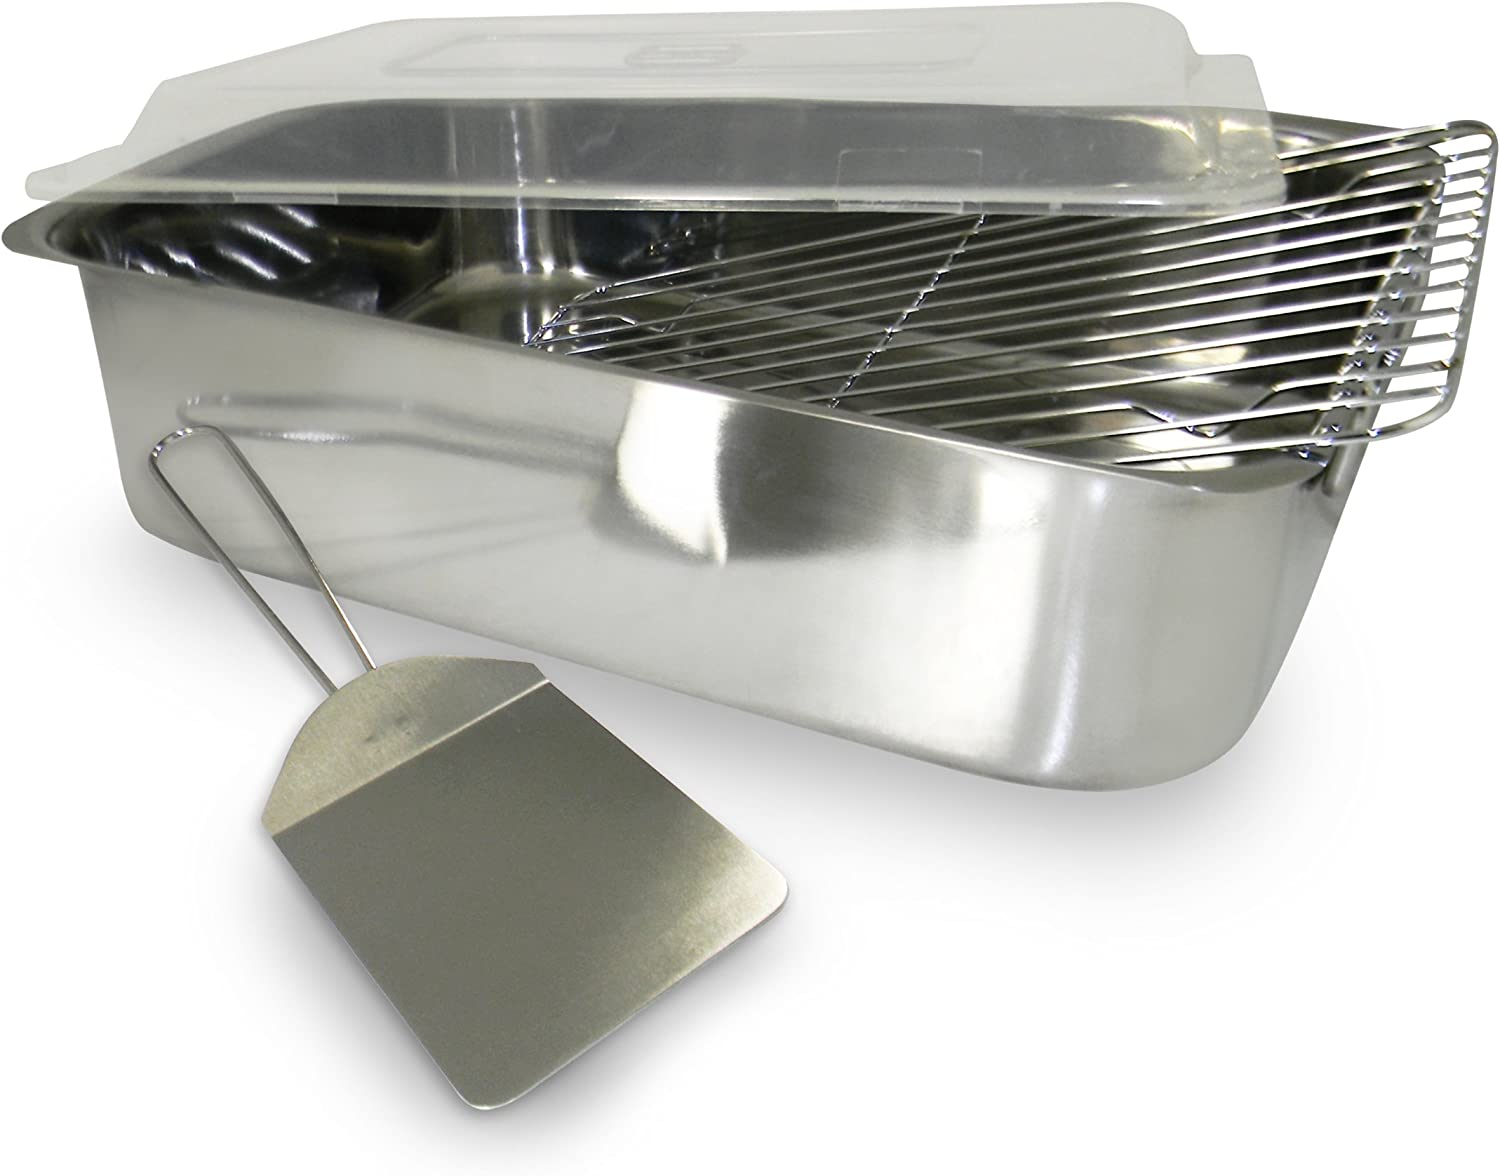 ExcelSteel 4-Piece Stainless Roaster with Cover Rack and Spatula